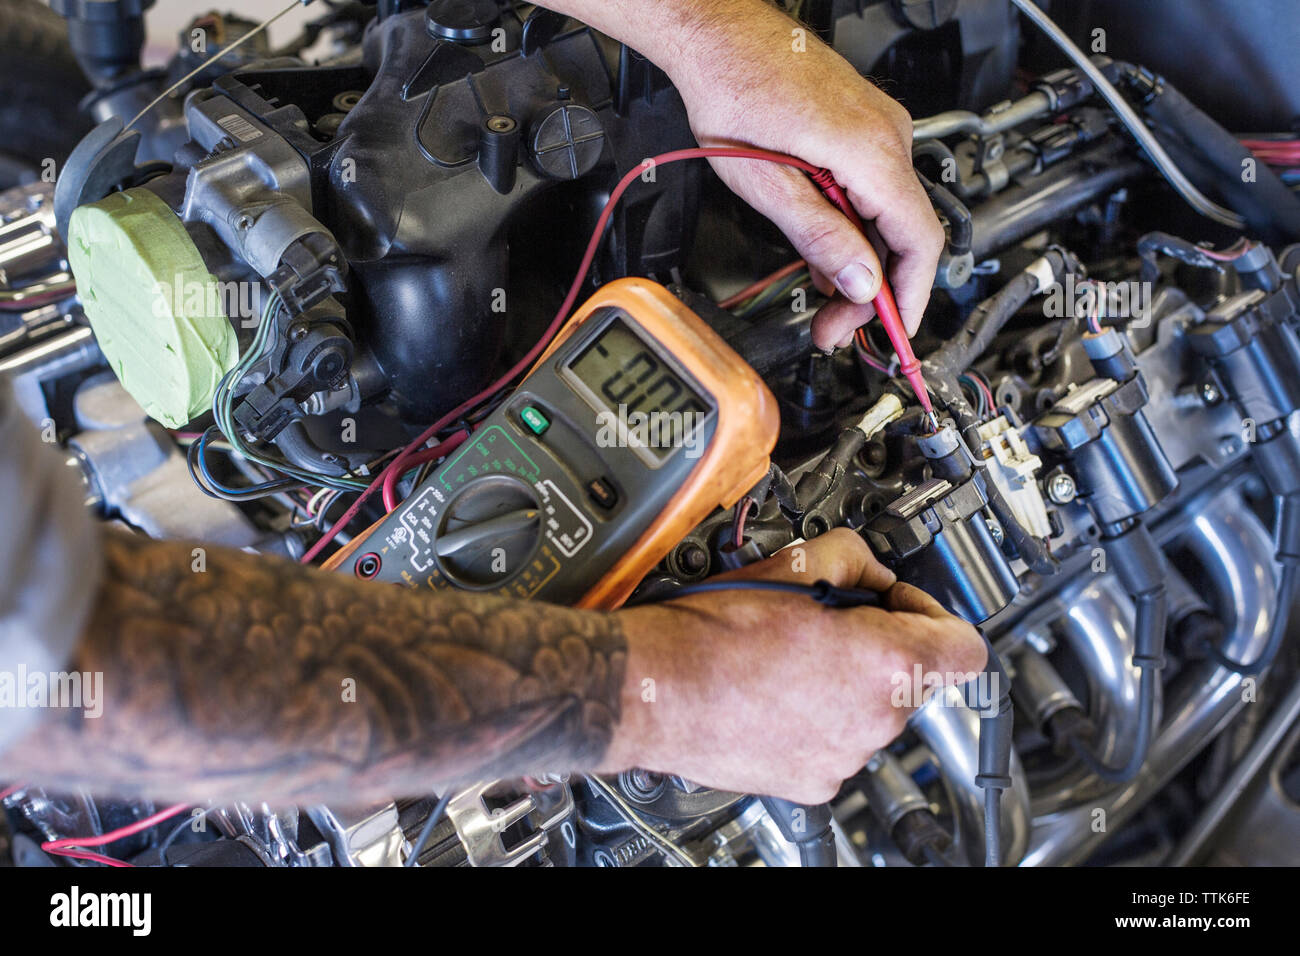 Cropped image of hands examining car engine with multimeter in auto repair shop - Stock Image